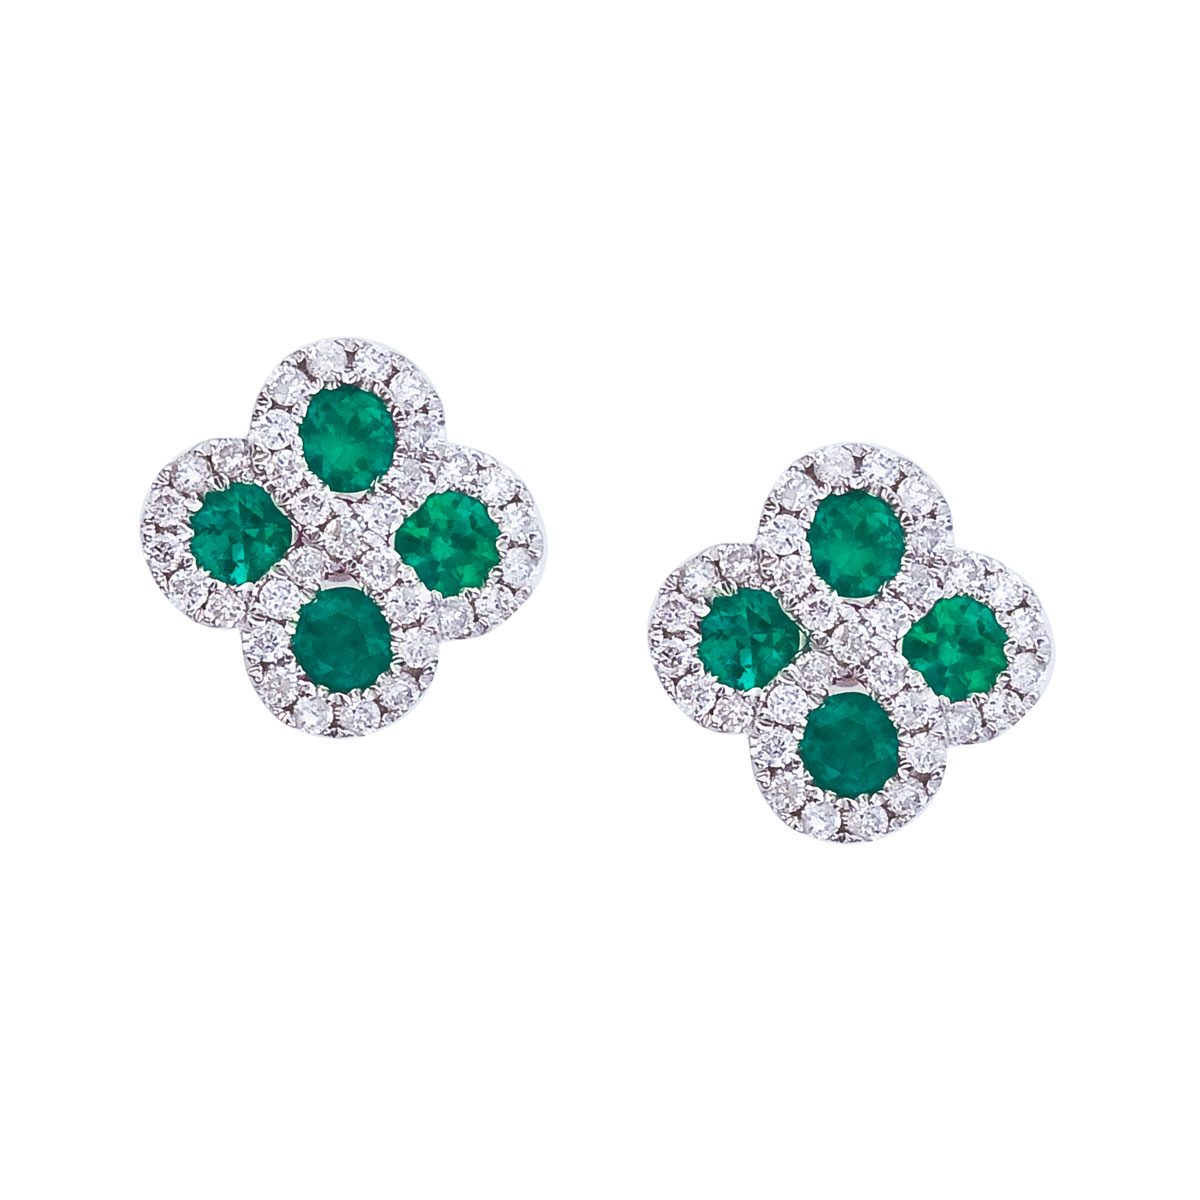 JCX2091: Beautiful clover shaped earrings with 2.7 mm emeralds surrounded by gleaming diamonds.